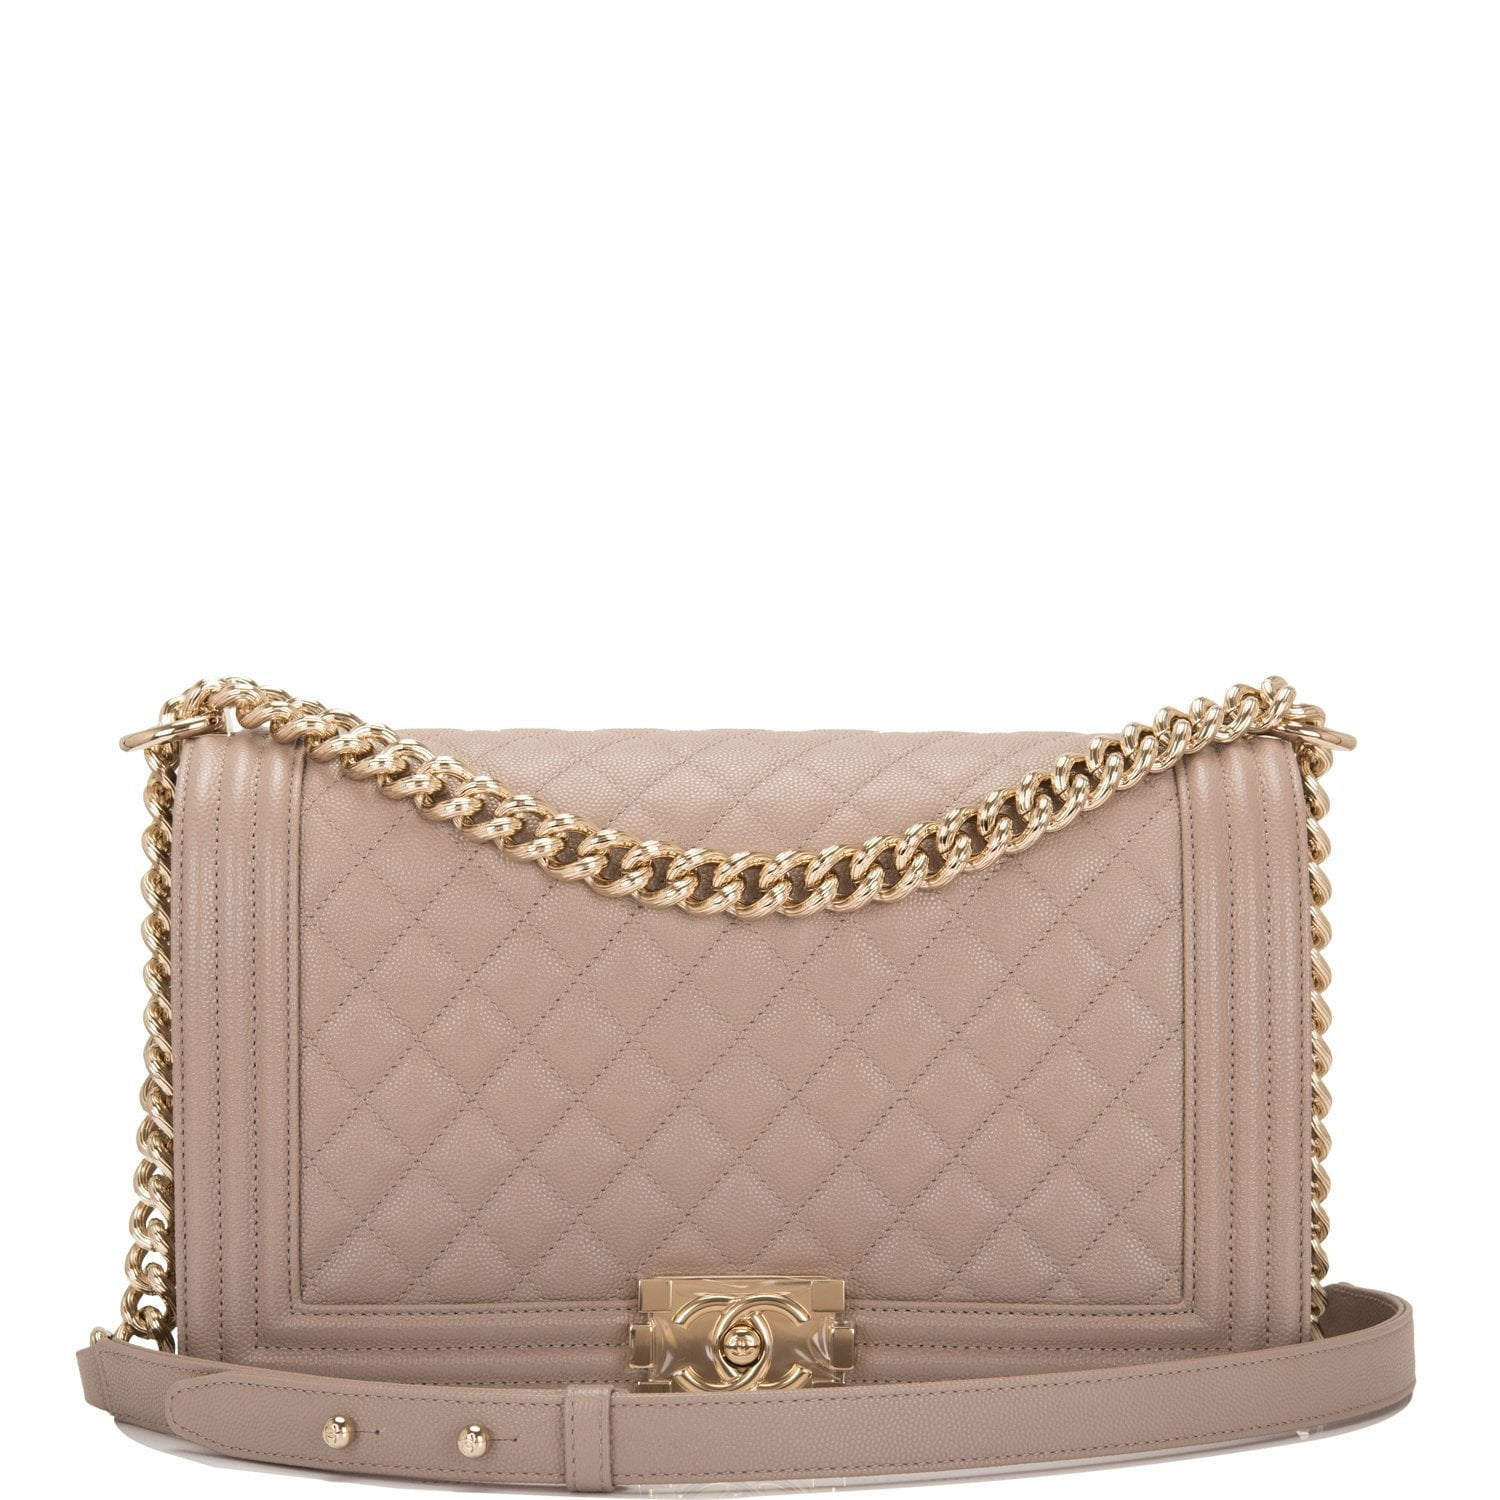 Chanel Dark Beige Shiny Quilted Caviar New Medium Boy Bag